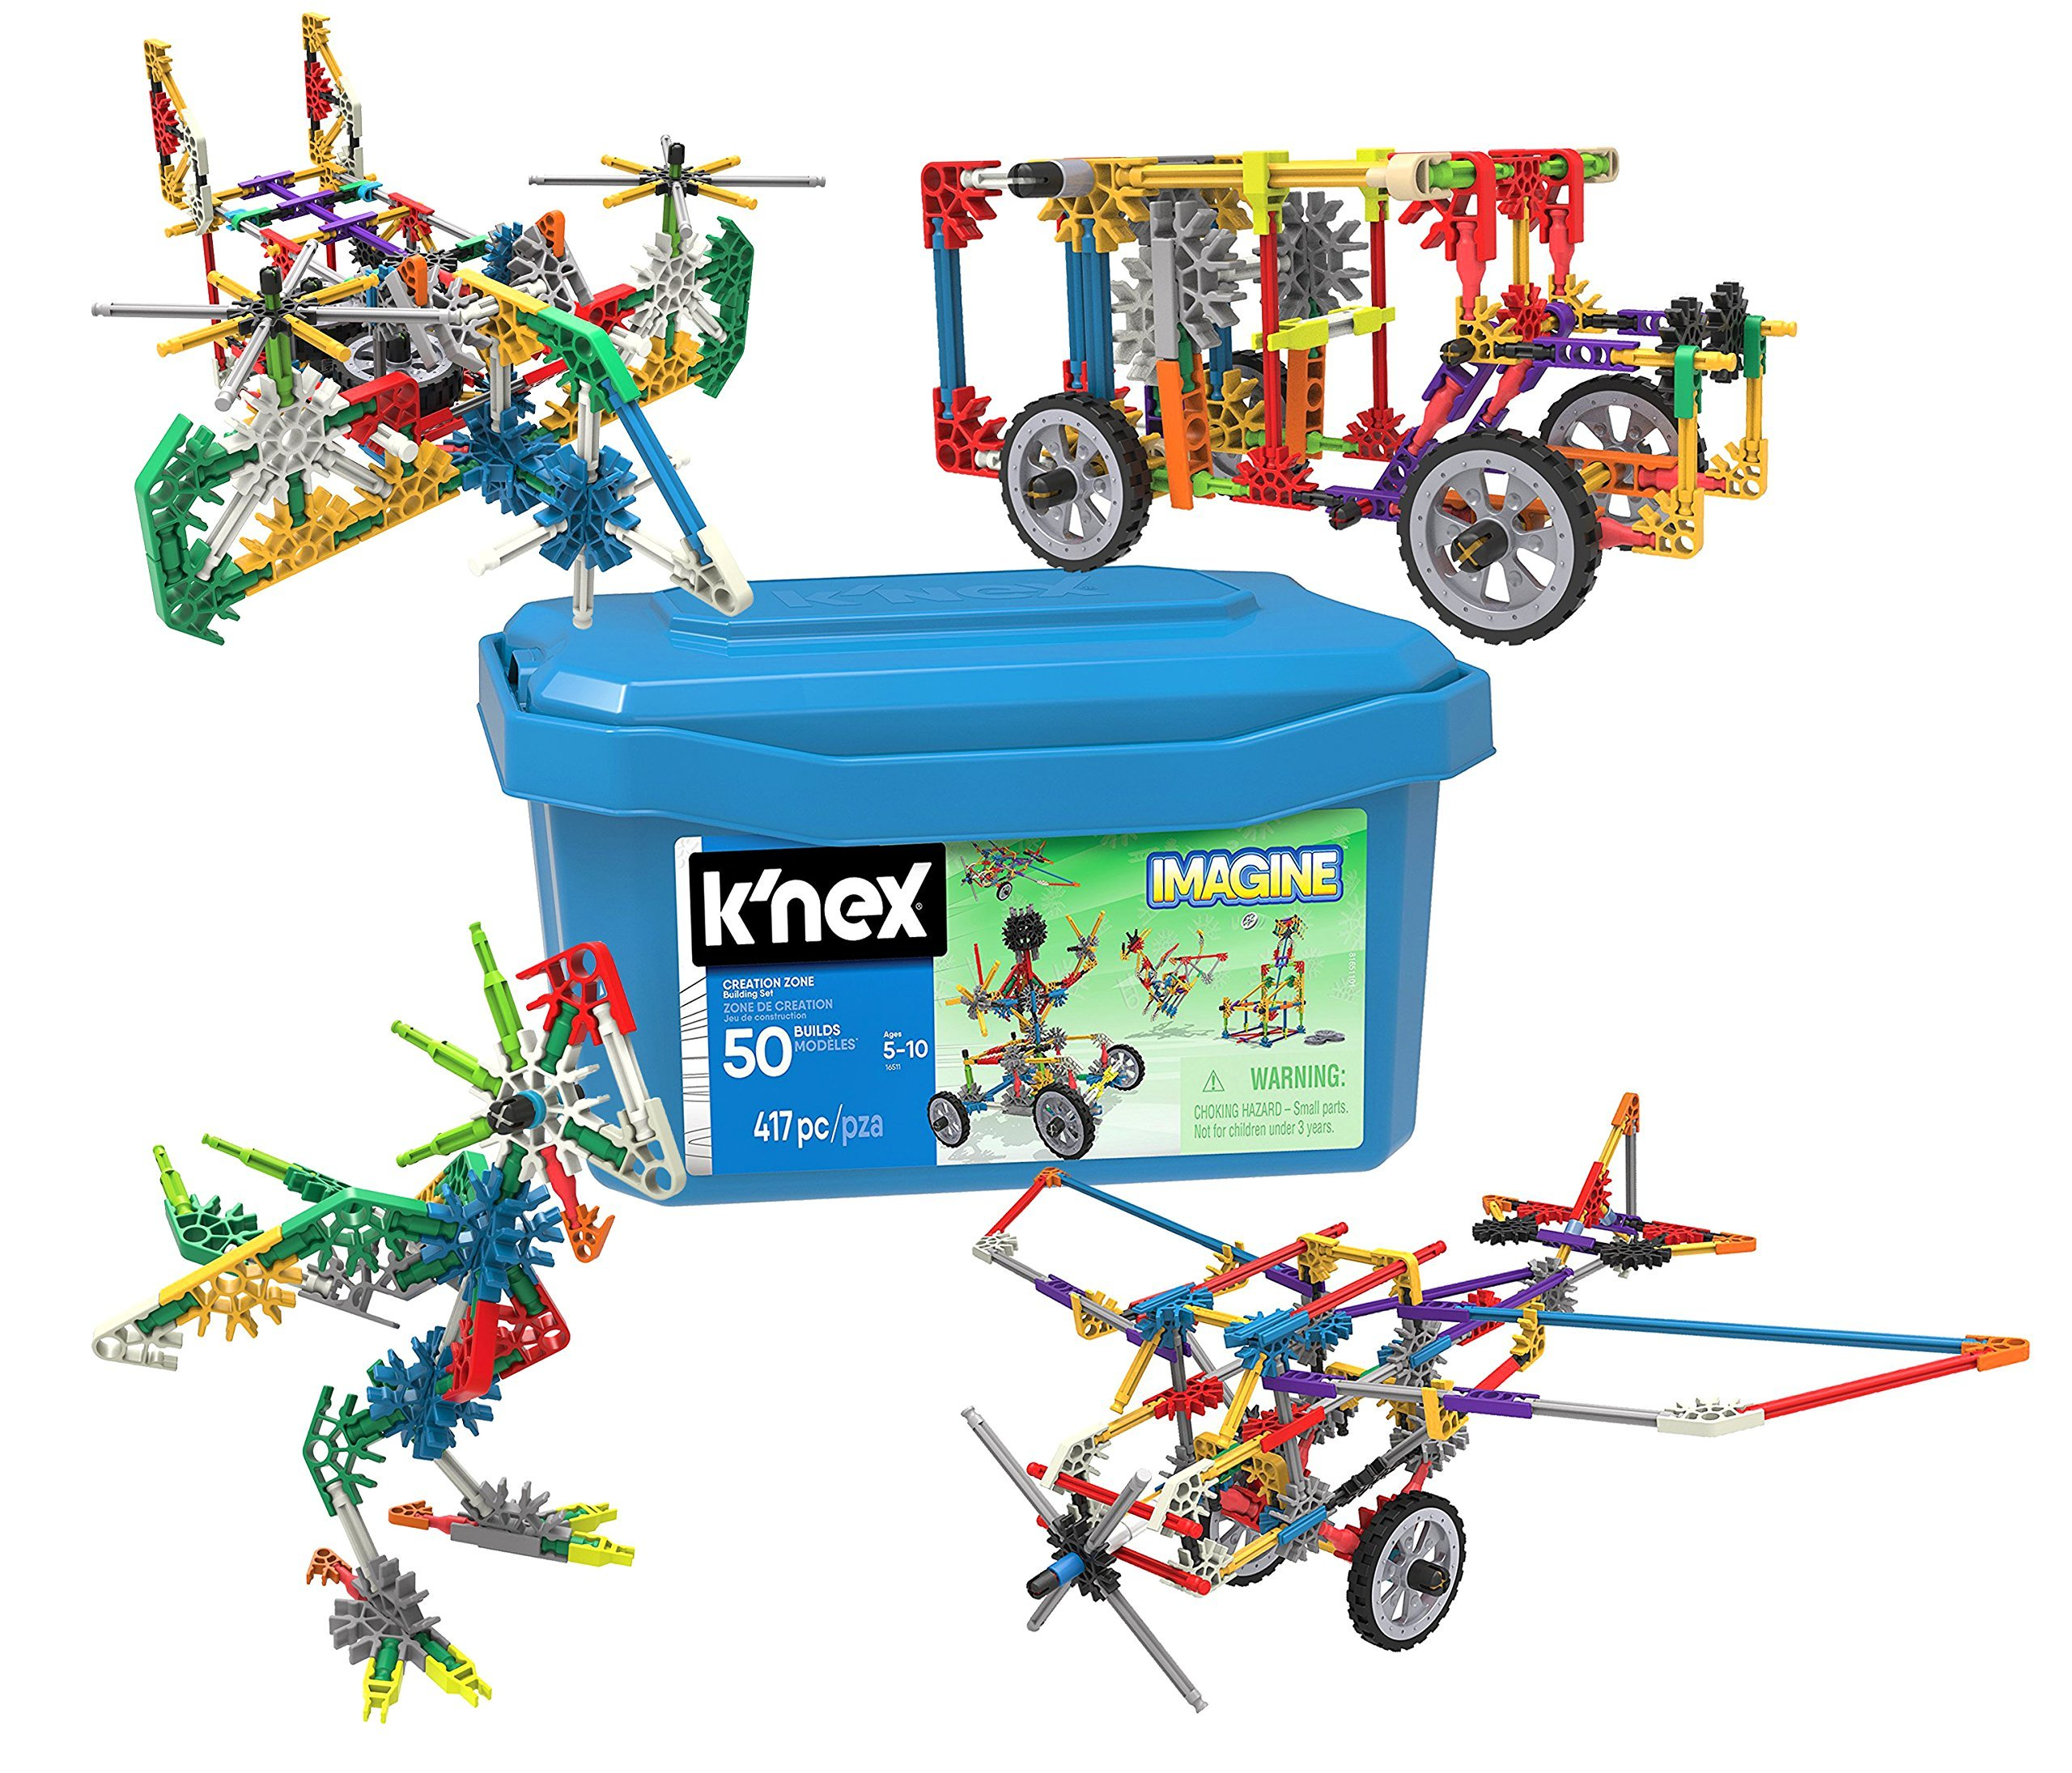 Toys Boys 10 Up Educational 7 Year Old Build 8 11 12 Teen Boy Gift